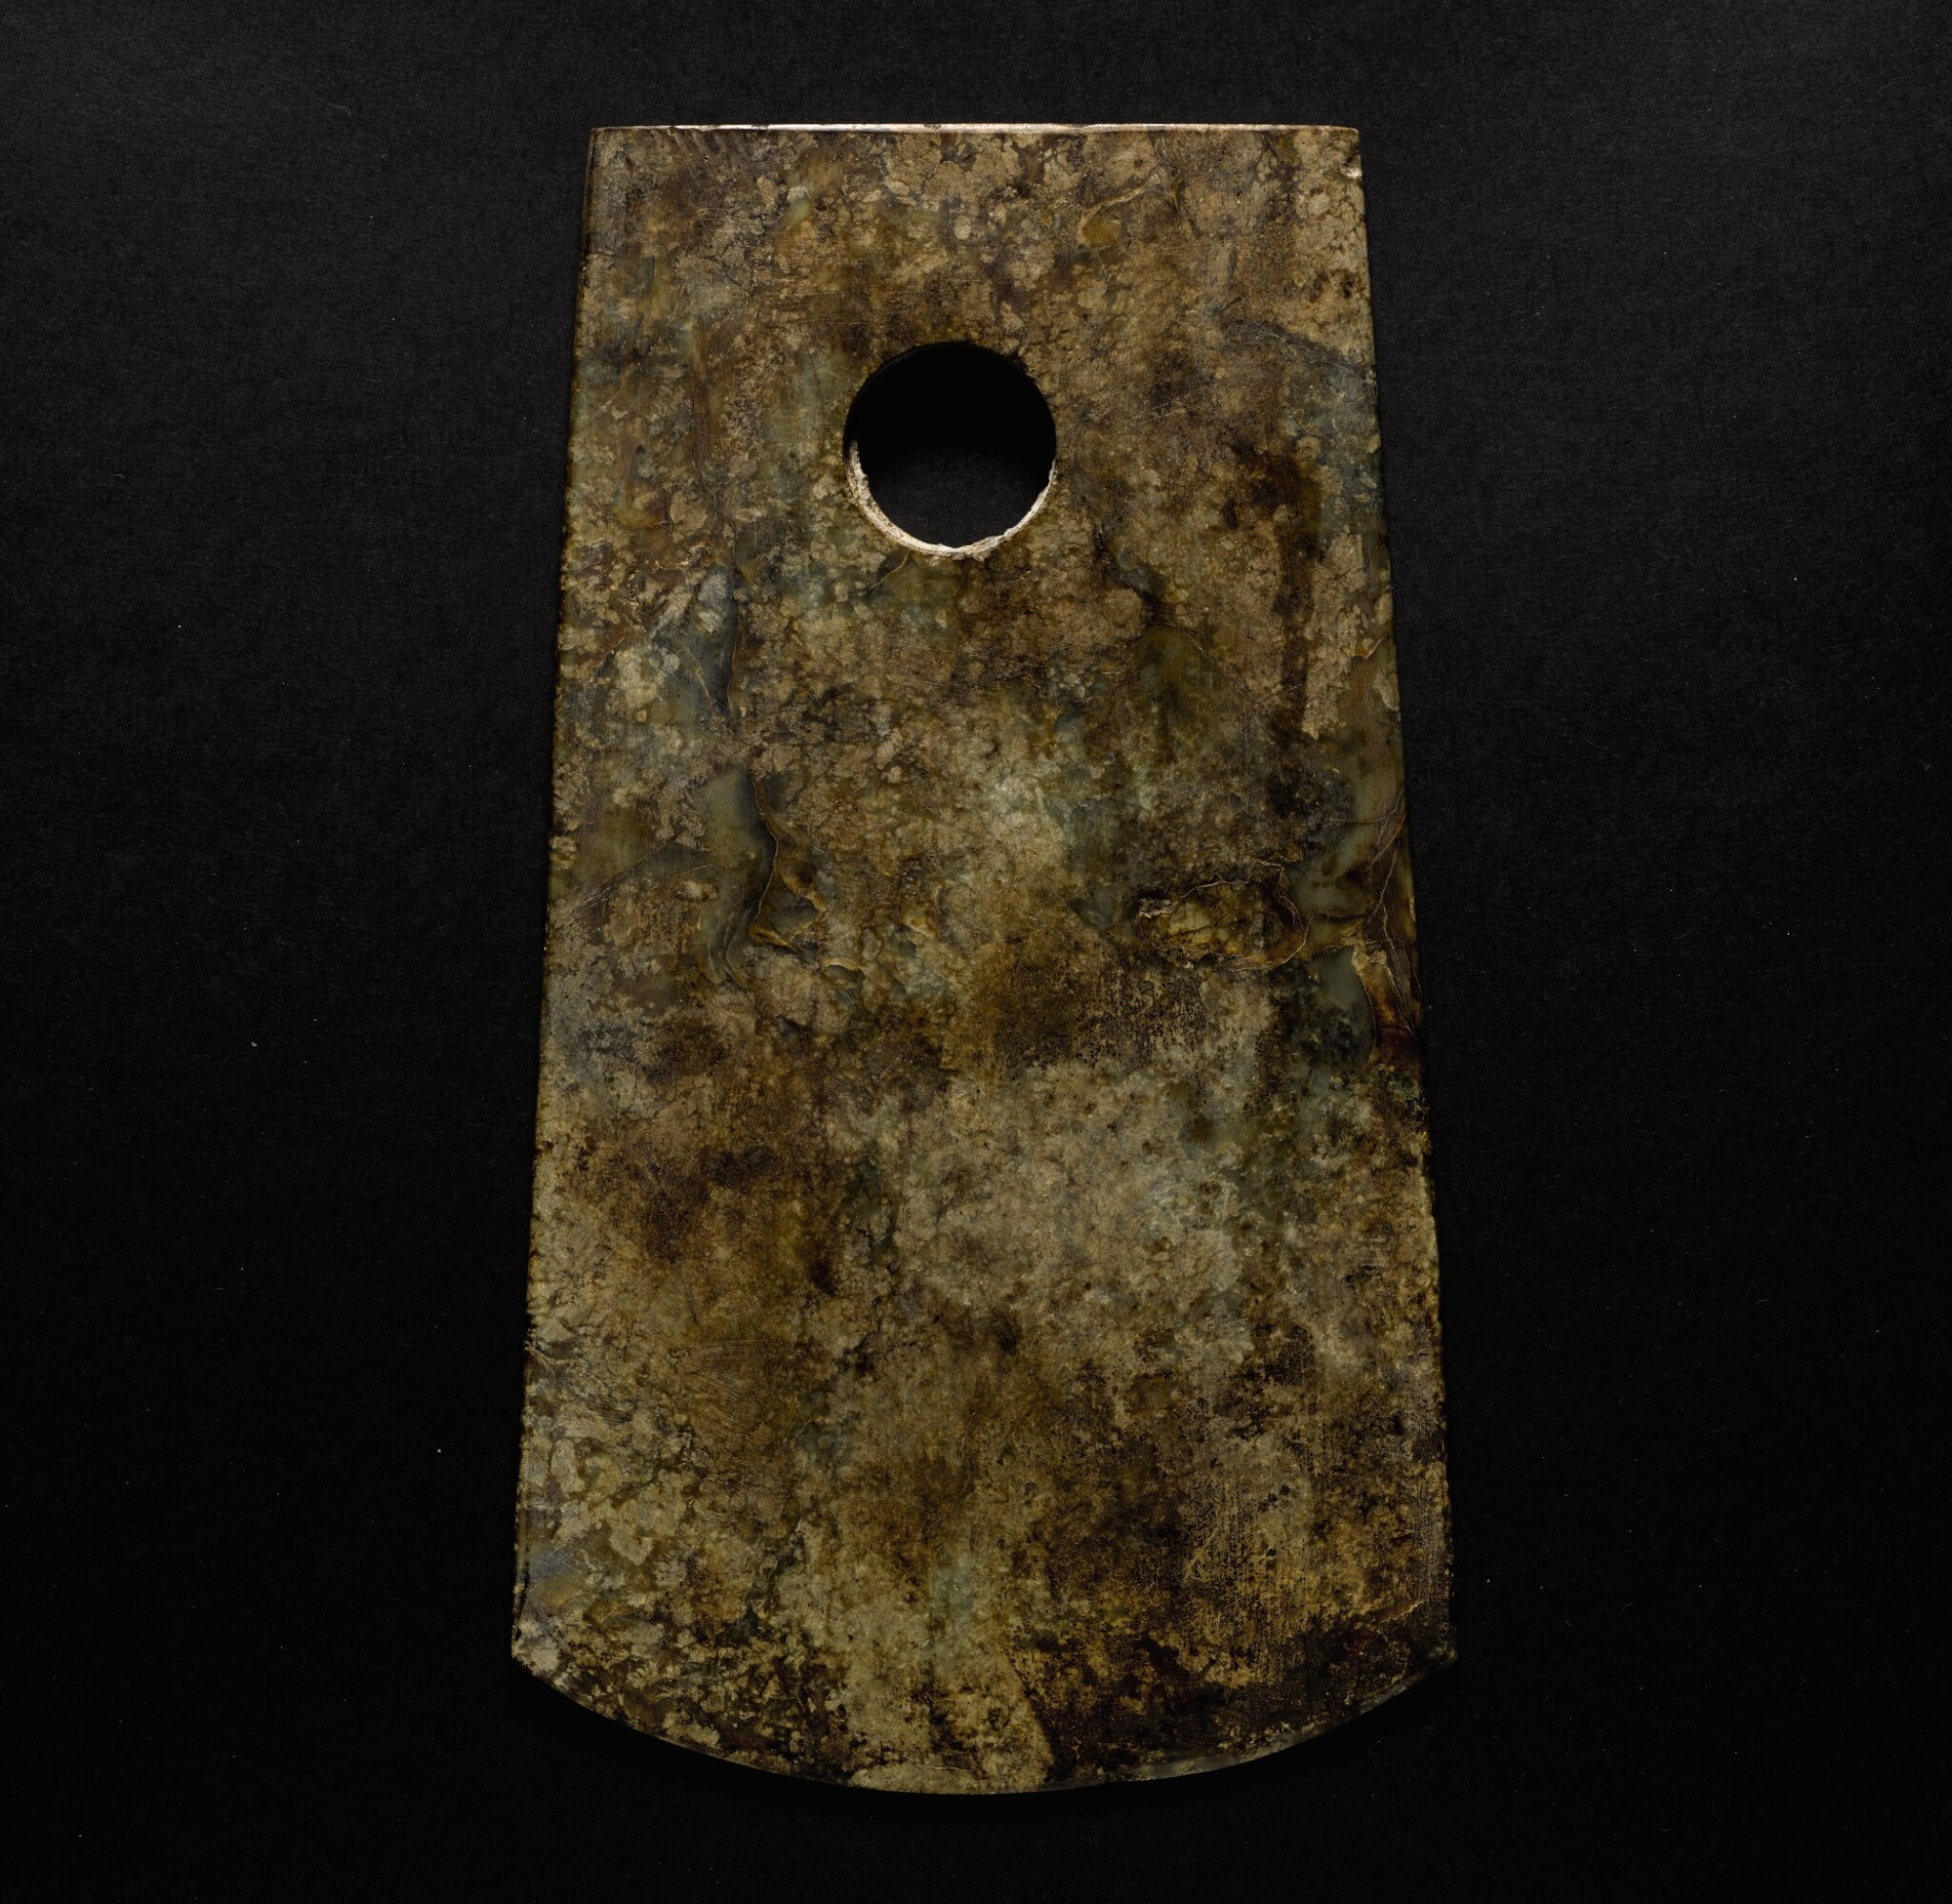 View 1 of Lot 208. A JADE AXE NEOLITHIC PERIOD | 新石器時代 玉斧.